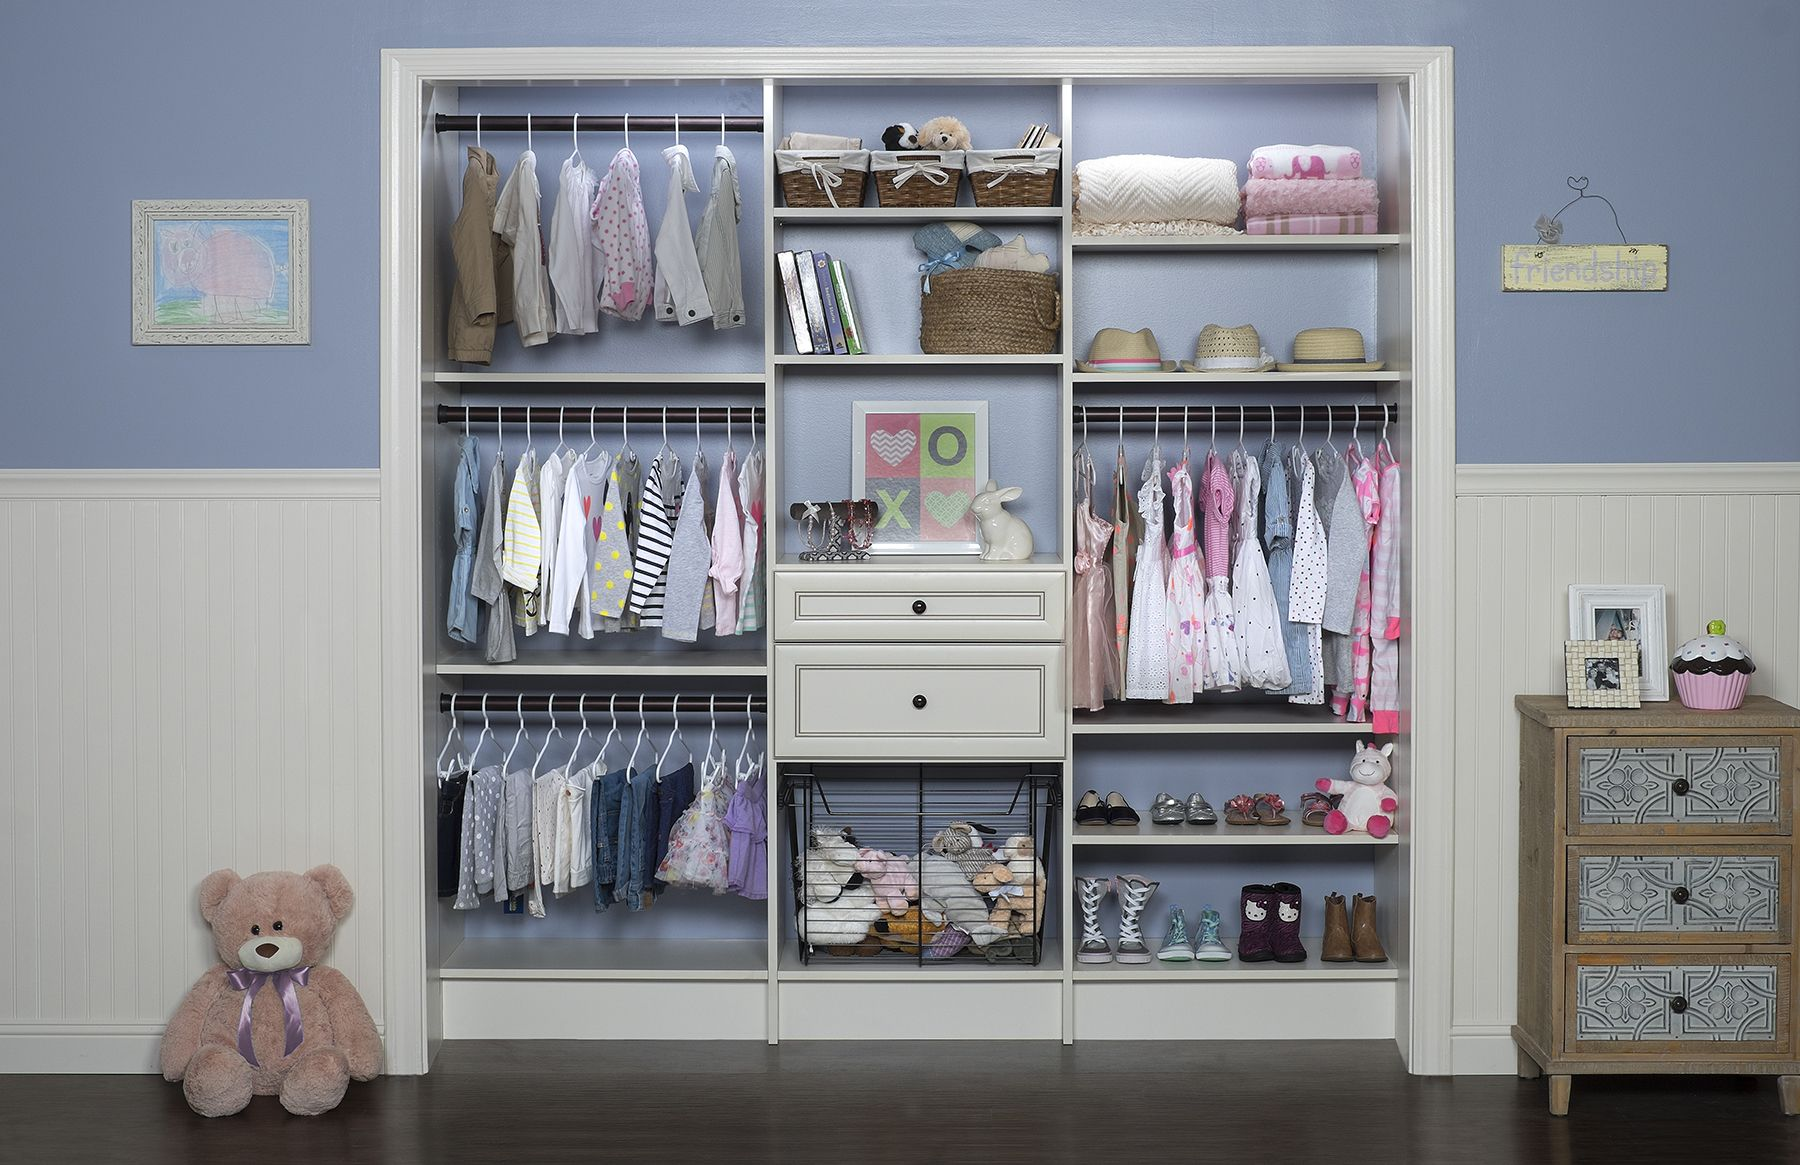 48 Best Ideas About Closets On Pinterest | Closet Organization, Walk In  Closet And Pears